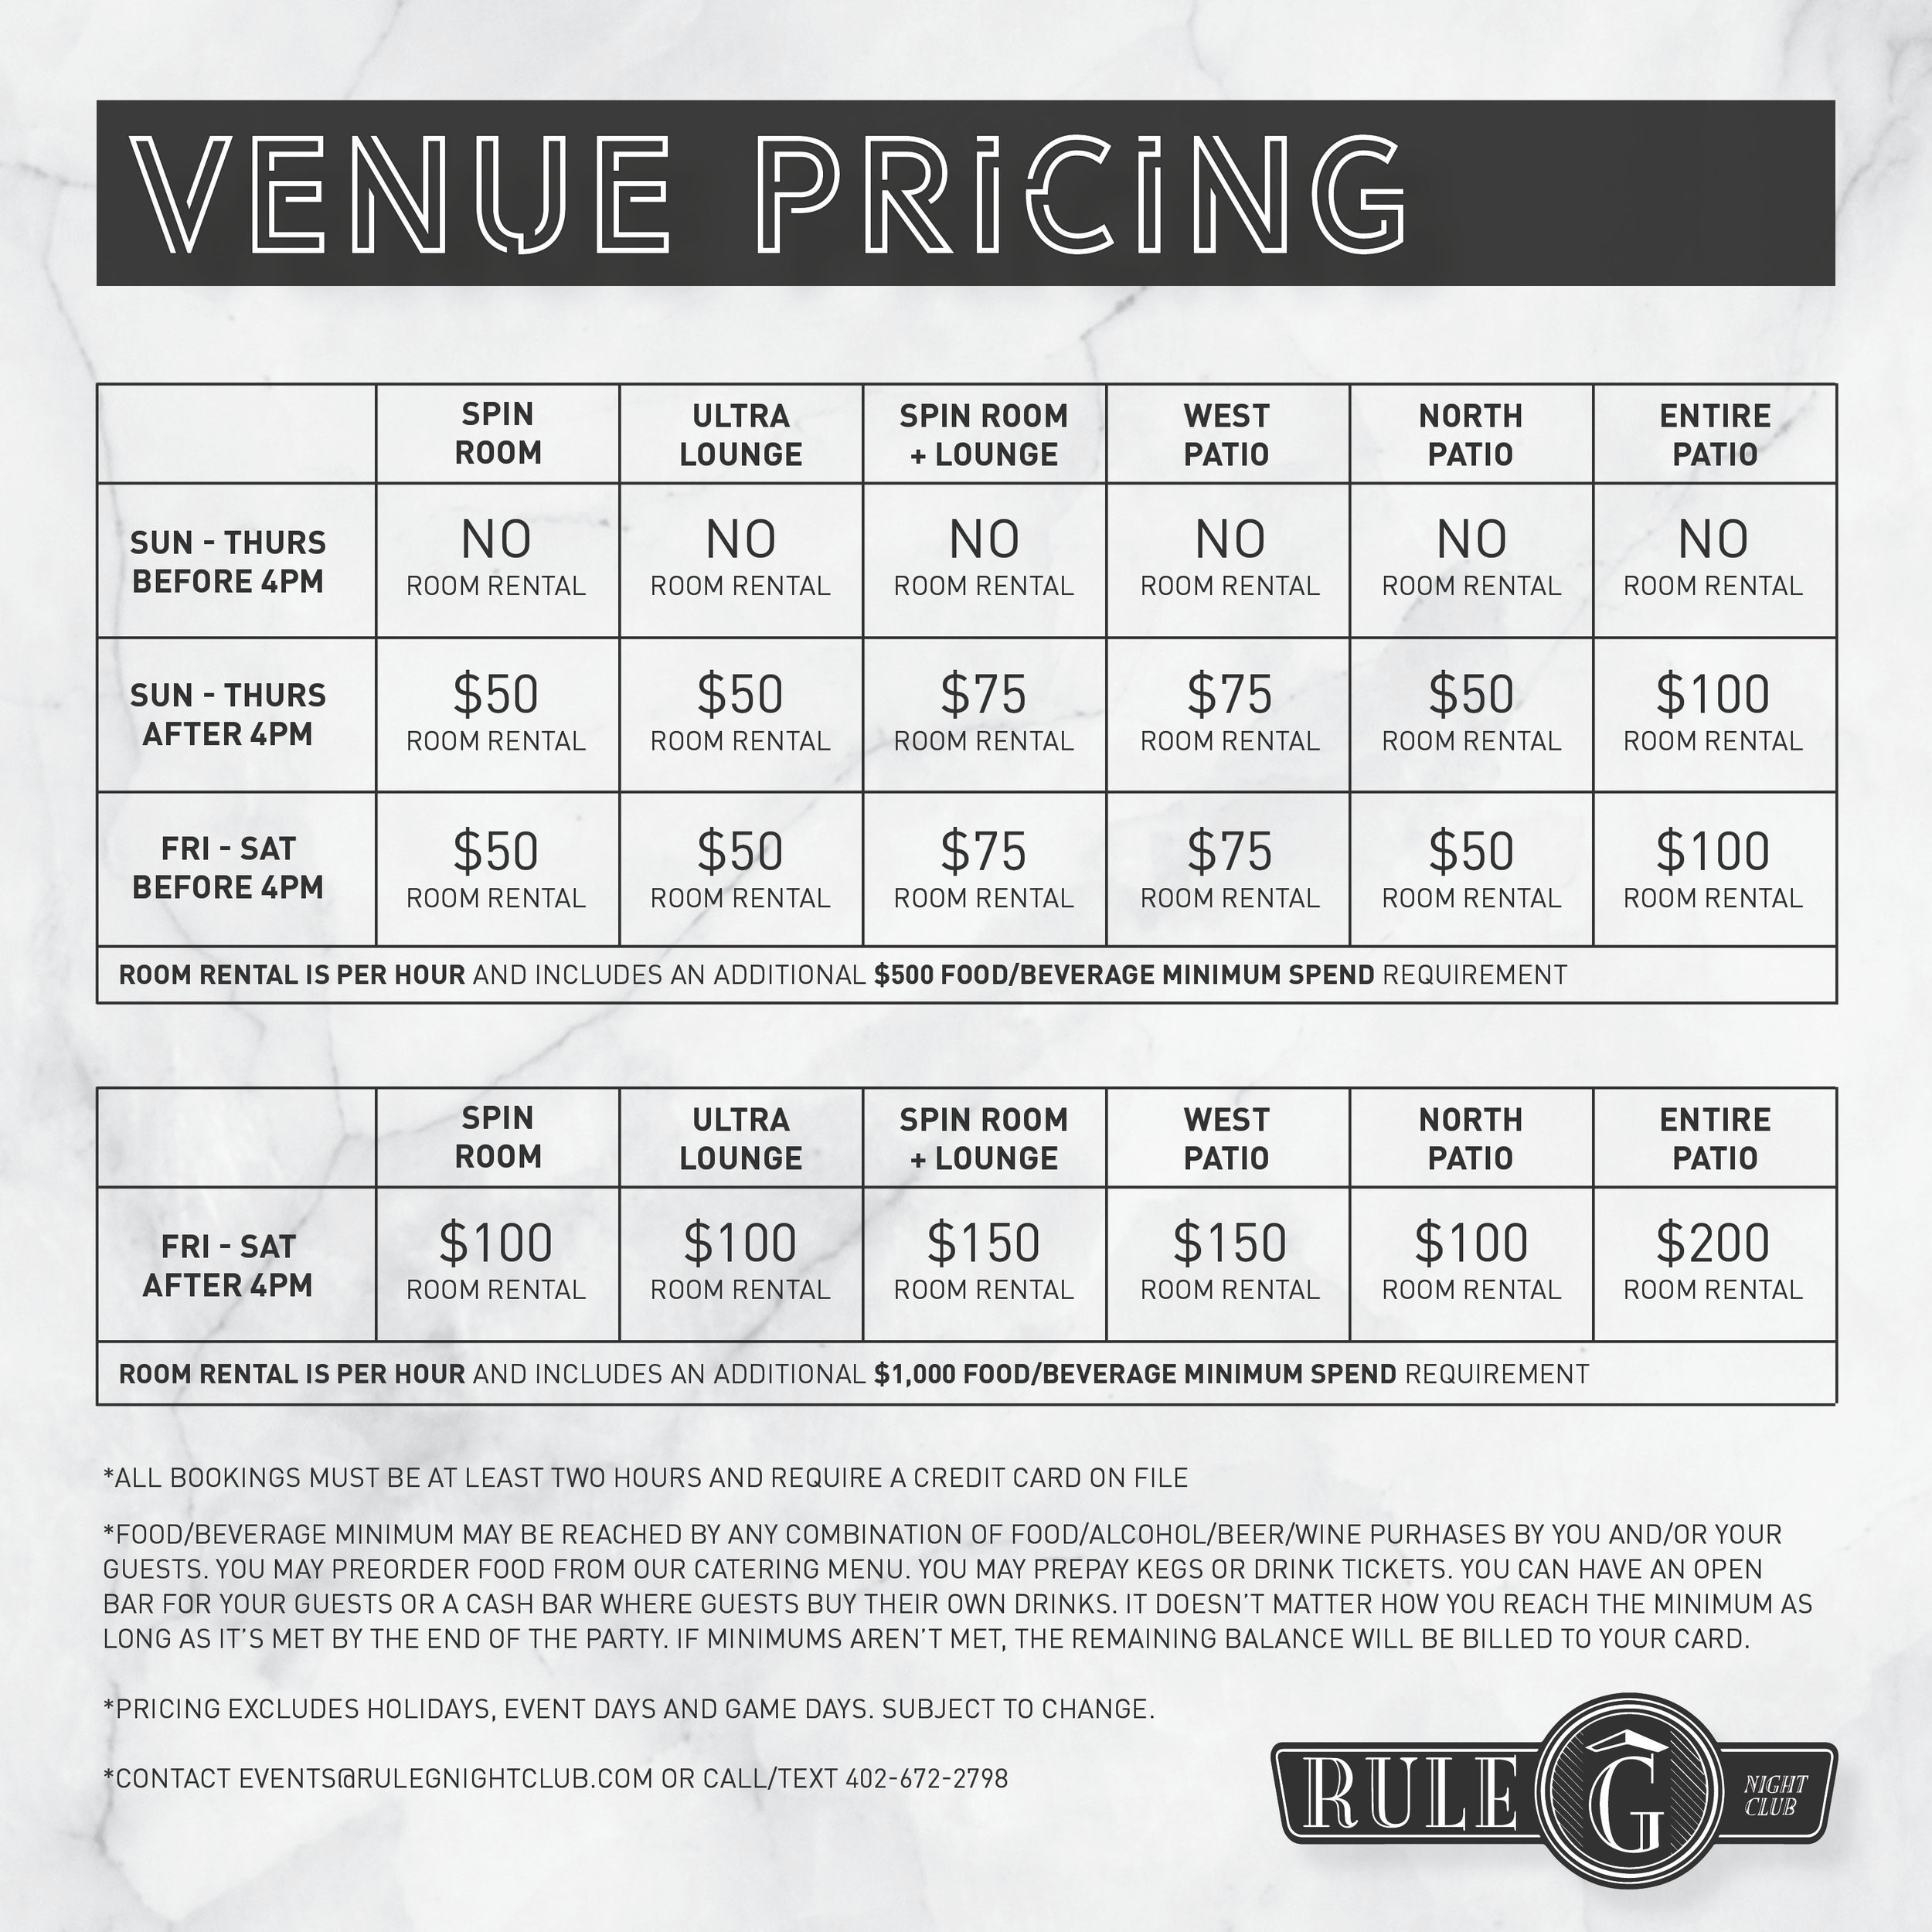 Rule G - Venue Pricing.jpg